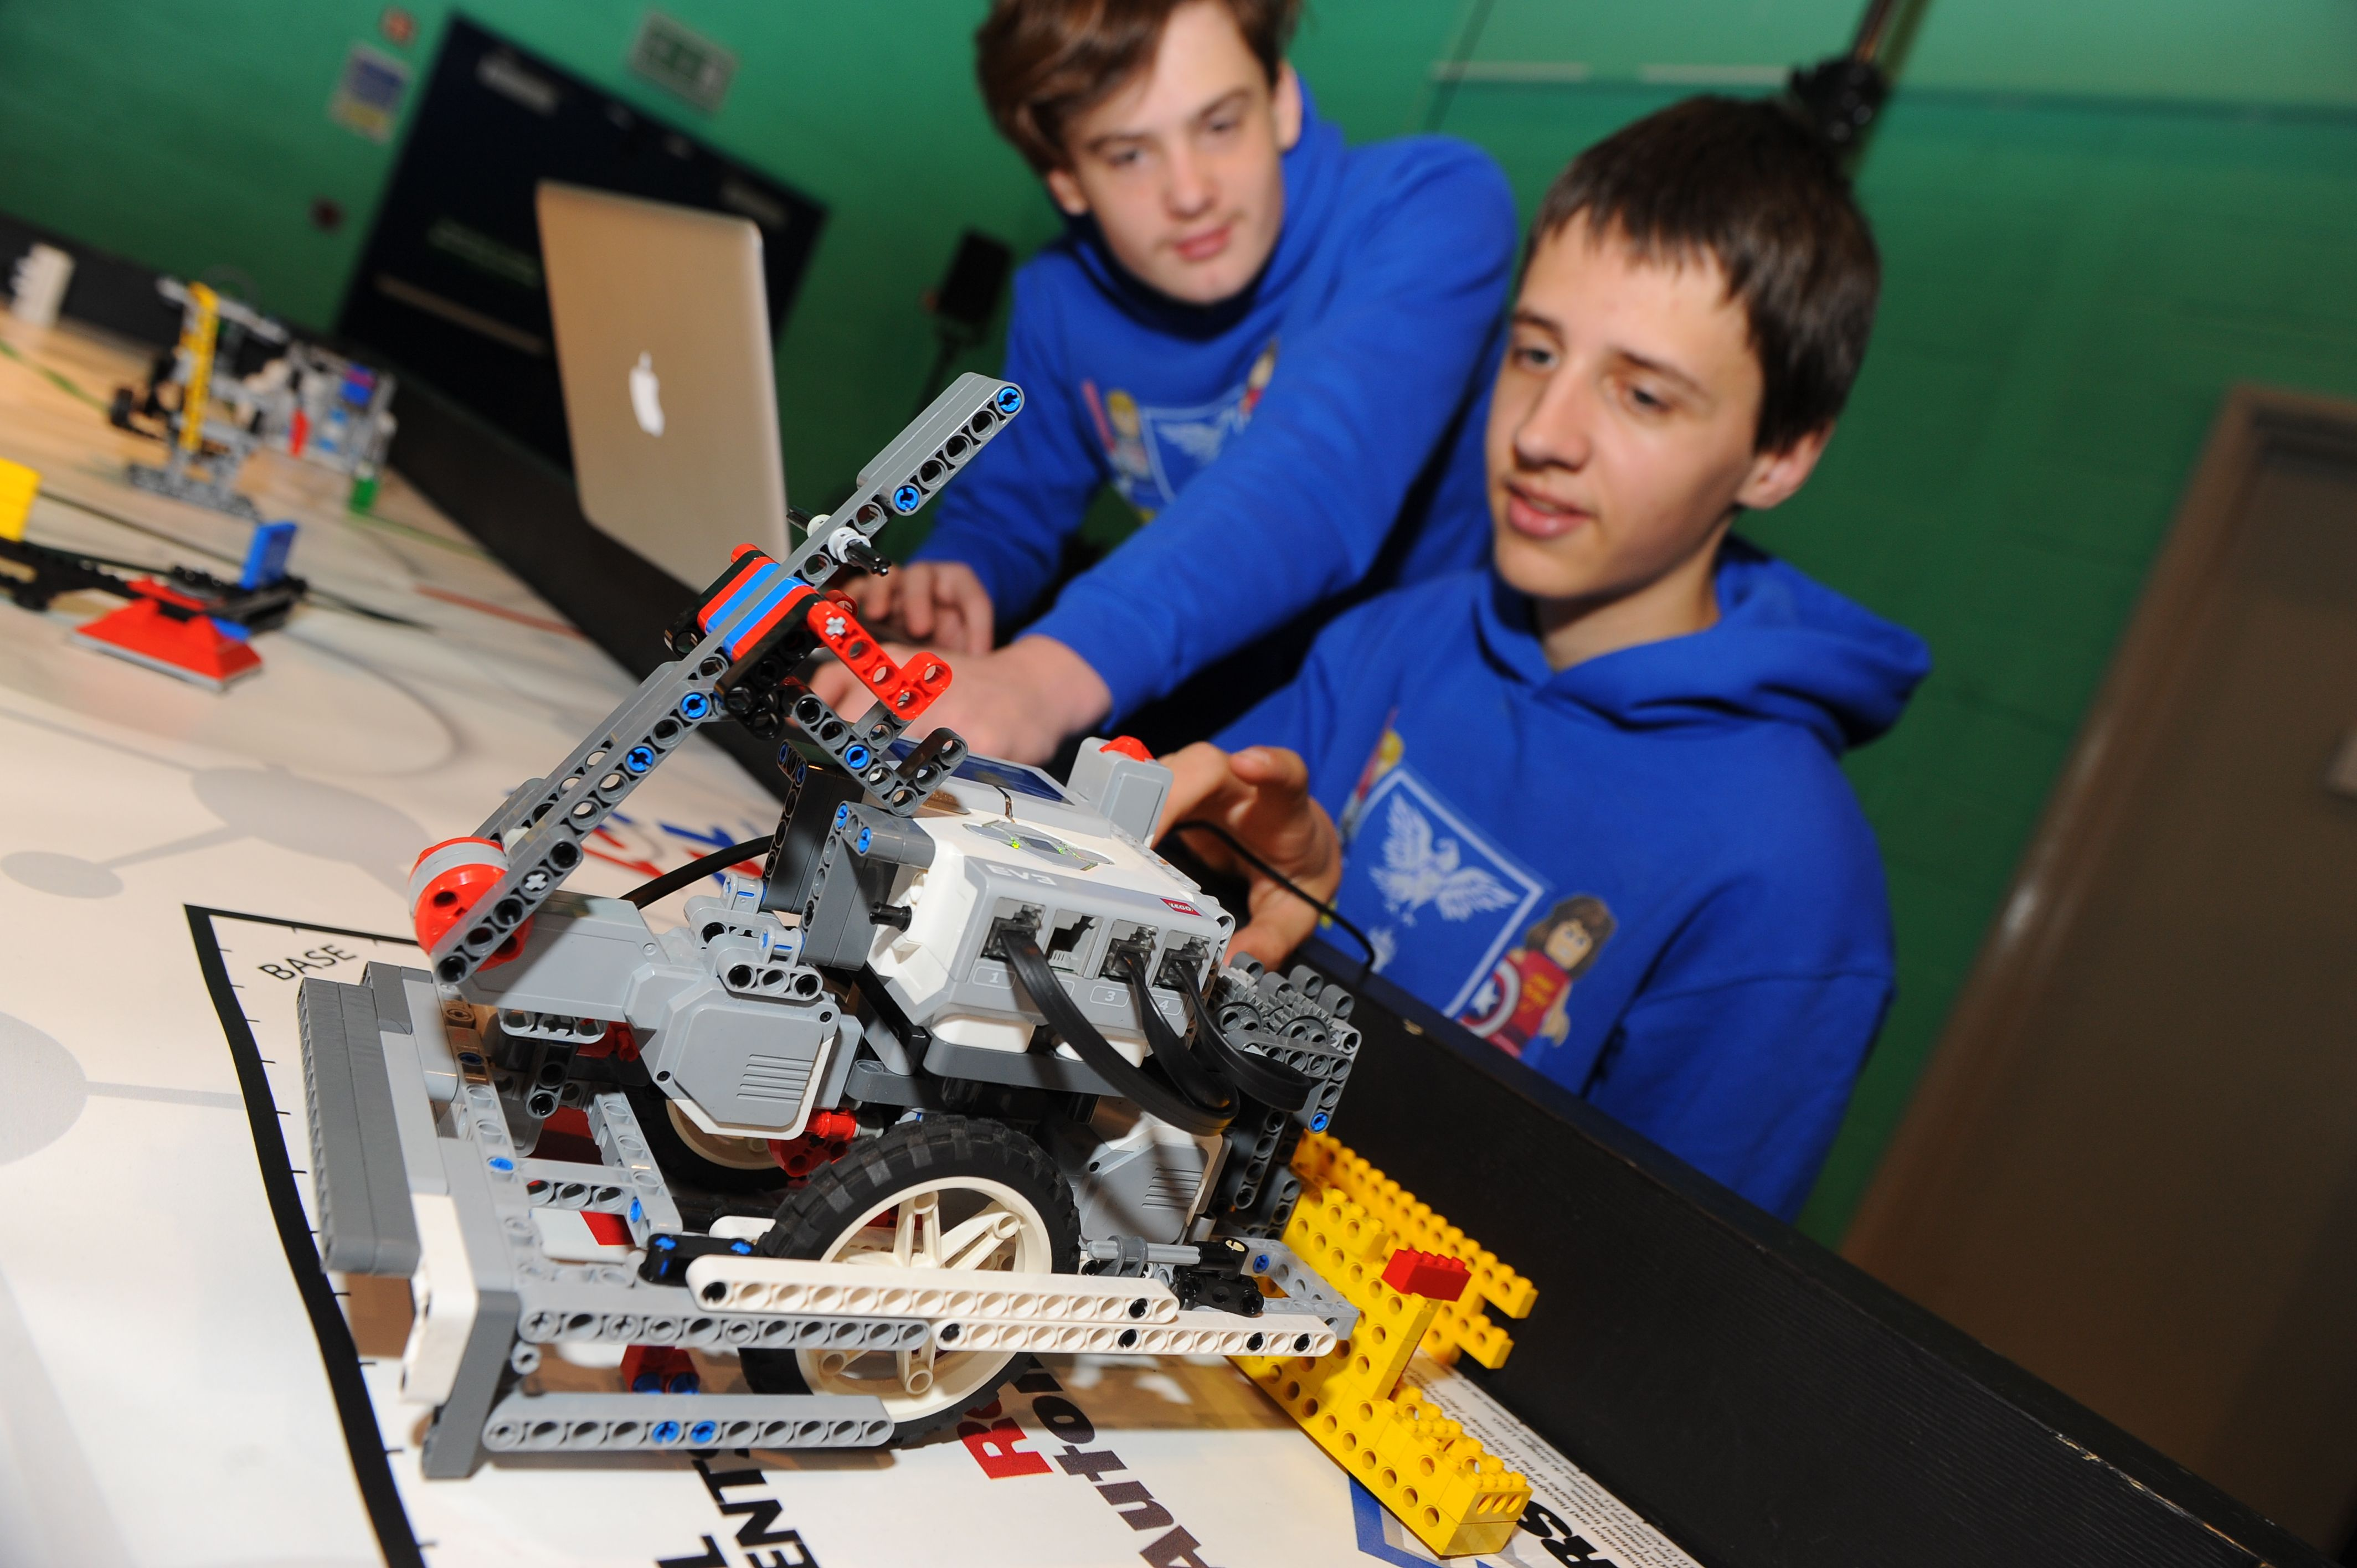 Team spirit and problem solving are among the skills required by these students taking part in the FIRST LEGO League competition http://firstlegoleague.theiet.org/